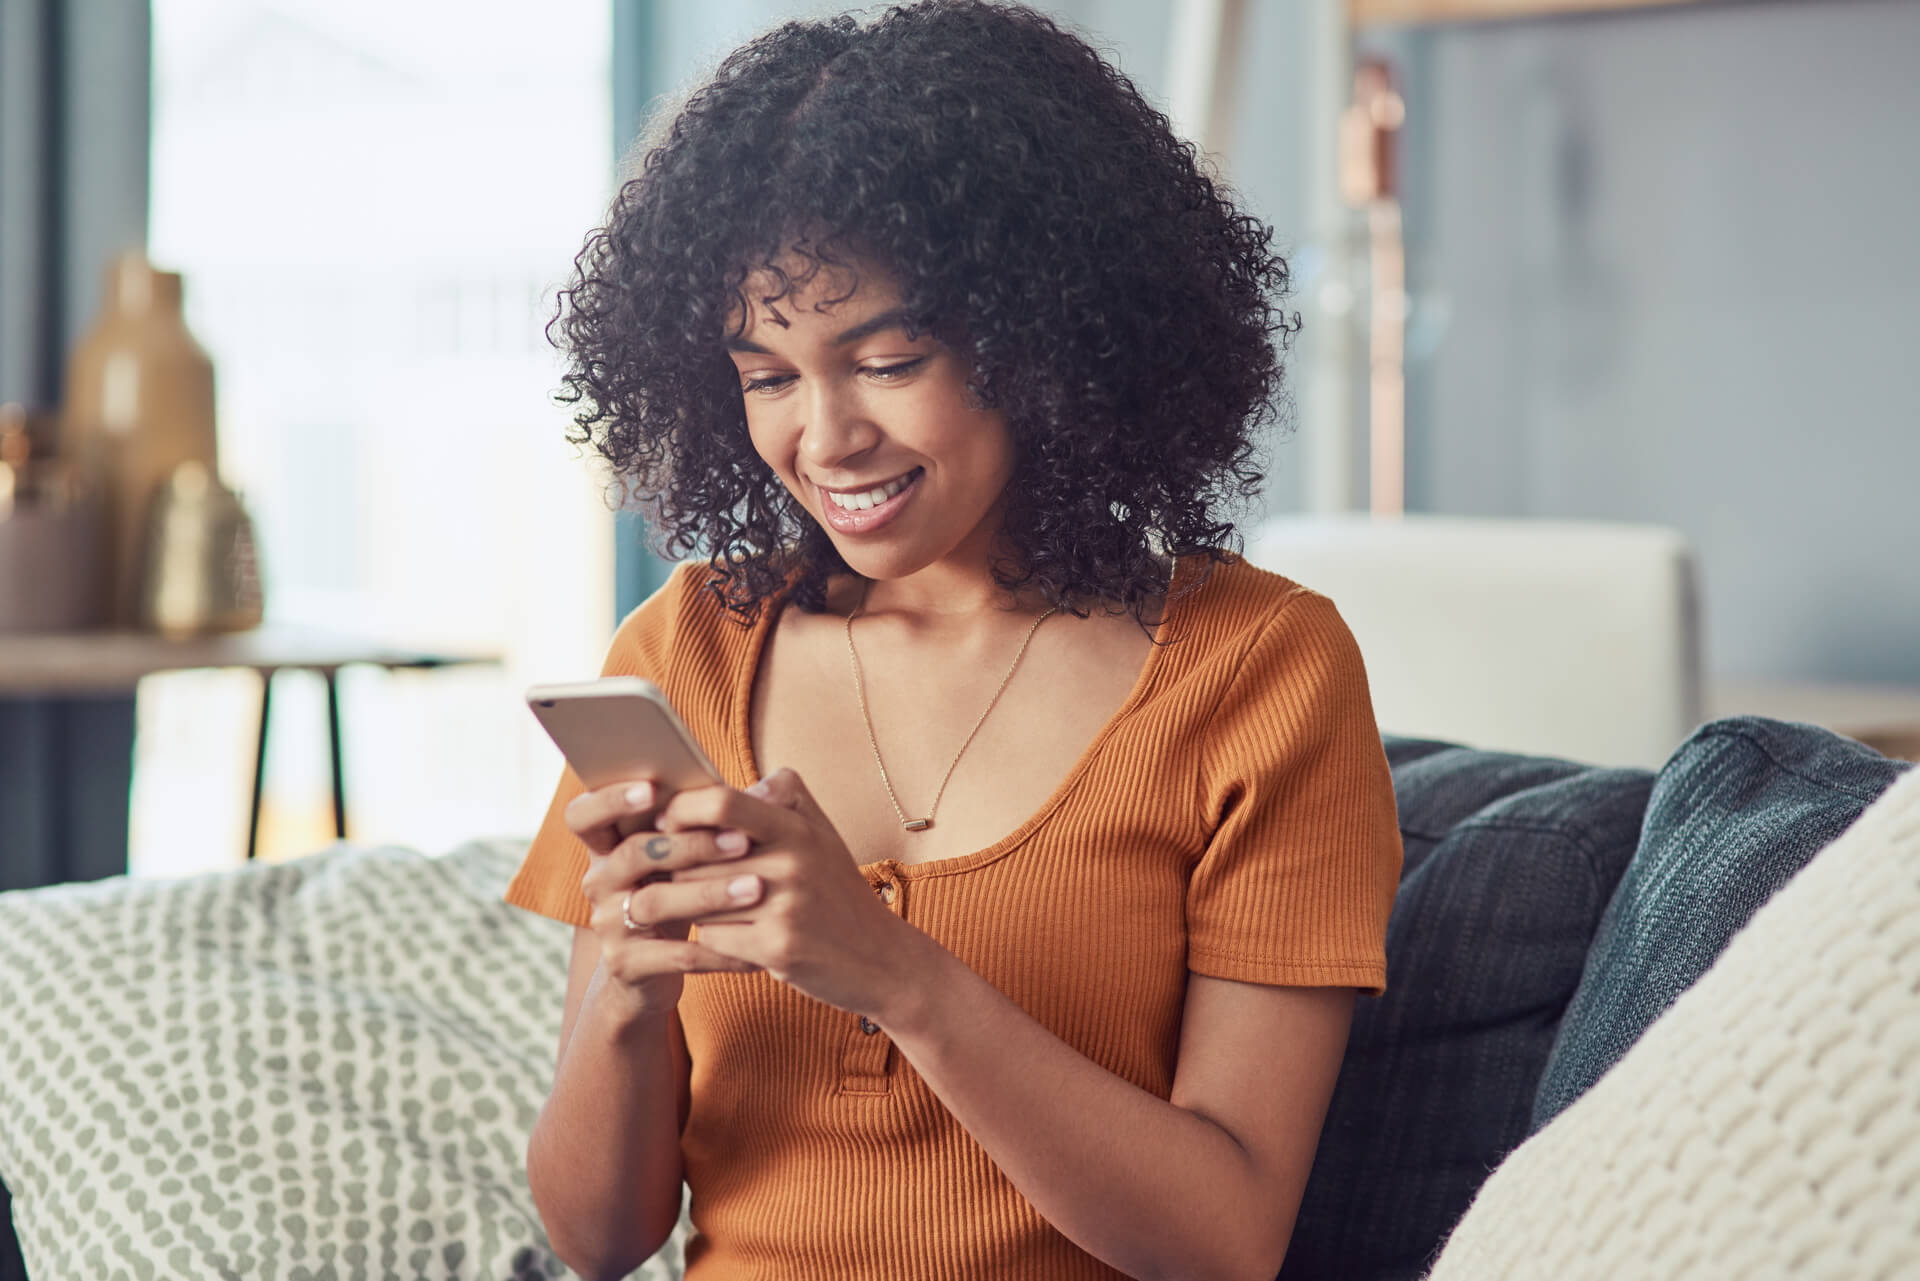 A picture of a women on her phone